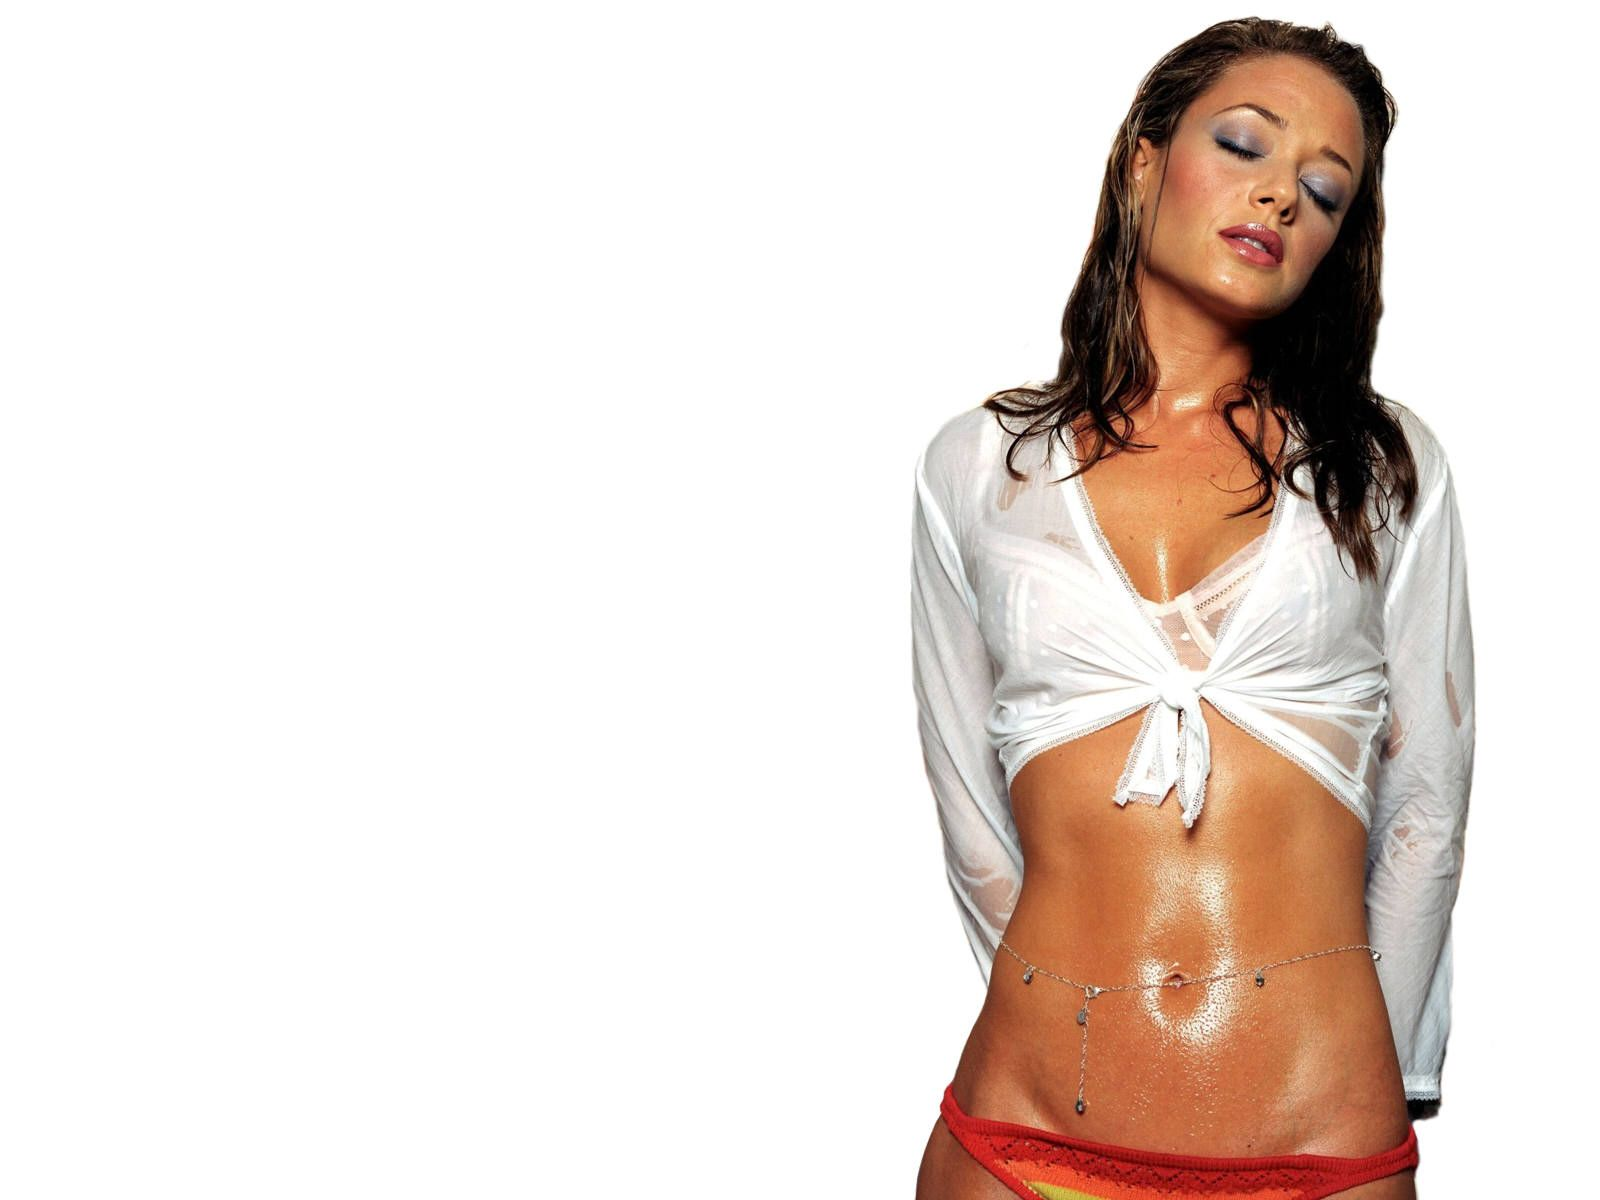 leah-remini-sexiest-free-hardcore-orgasms